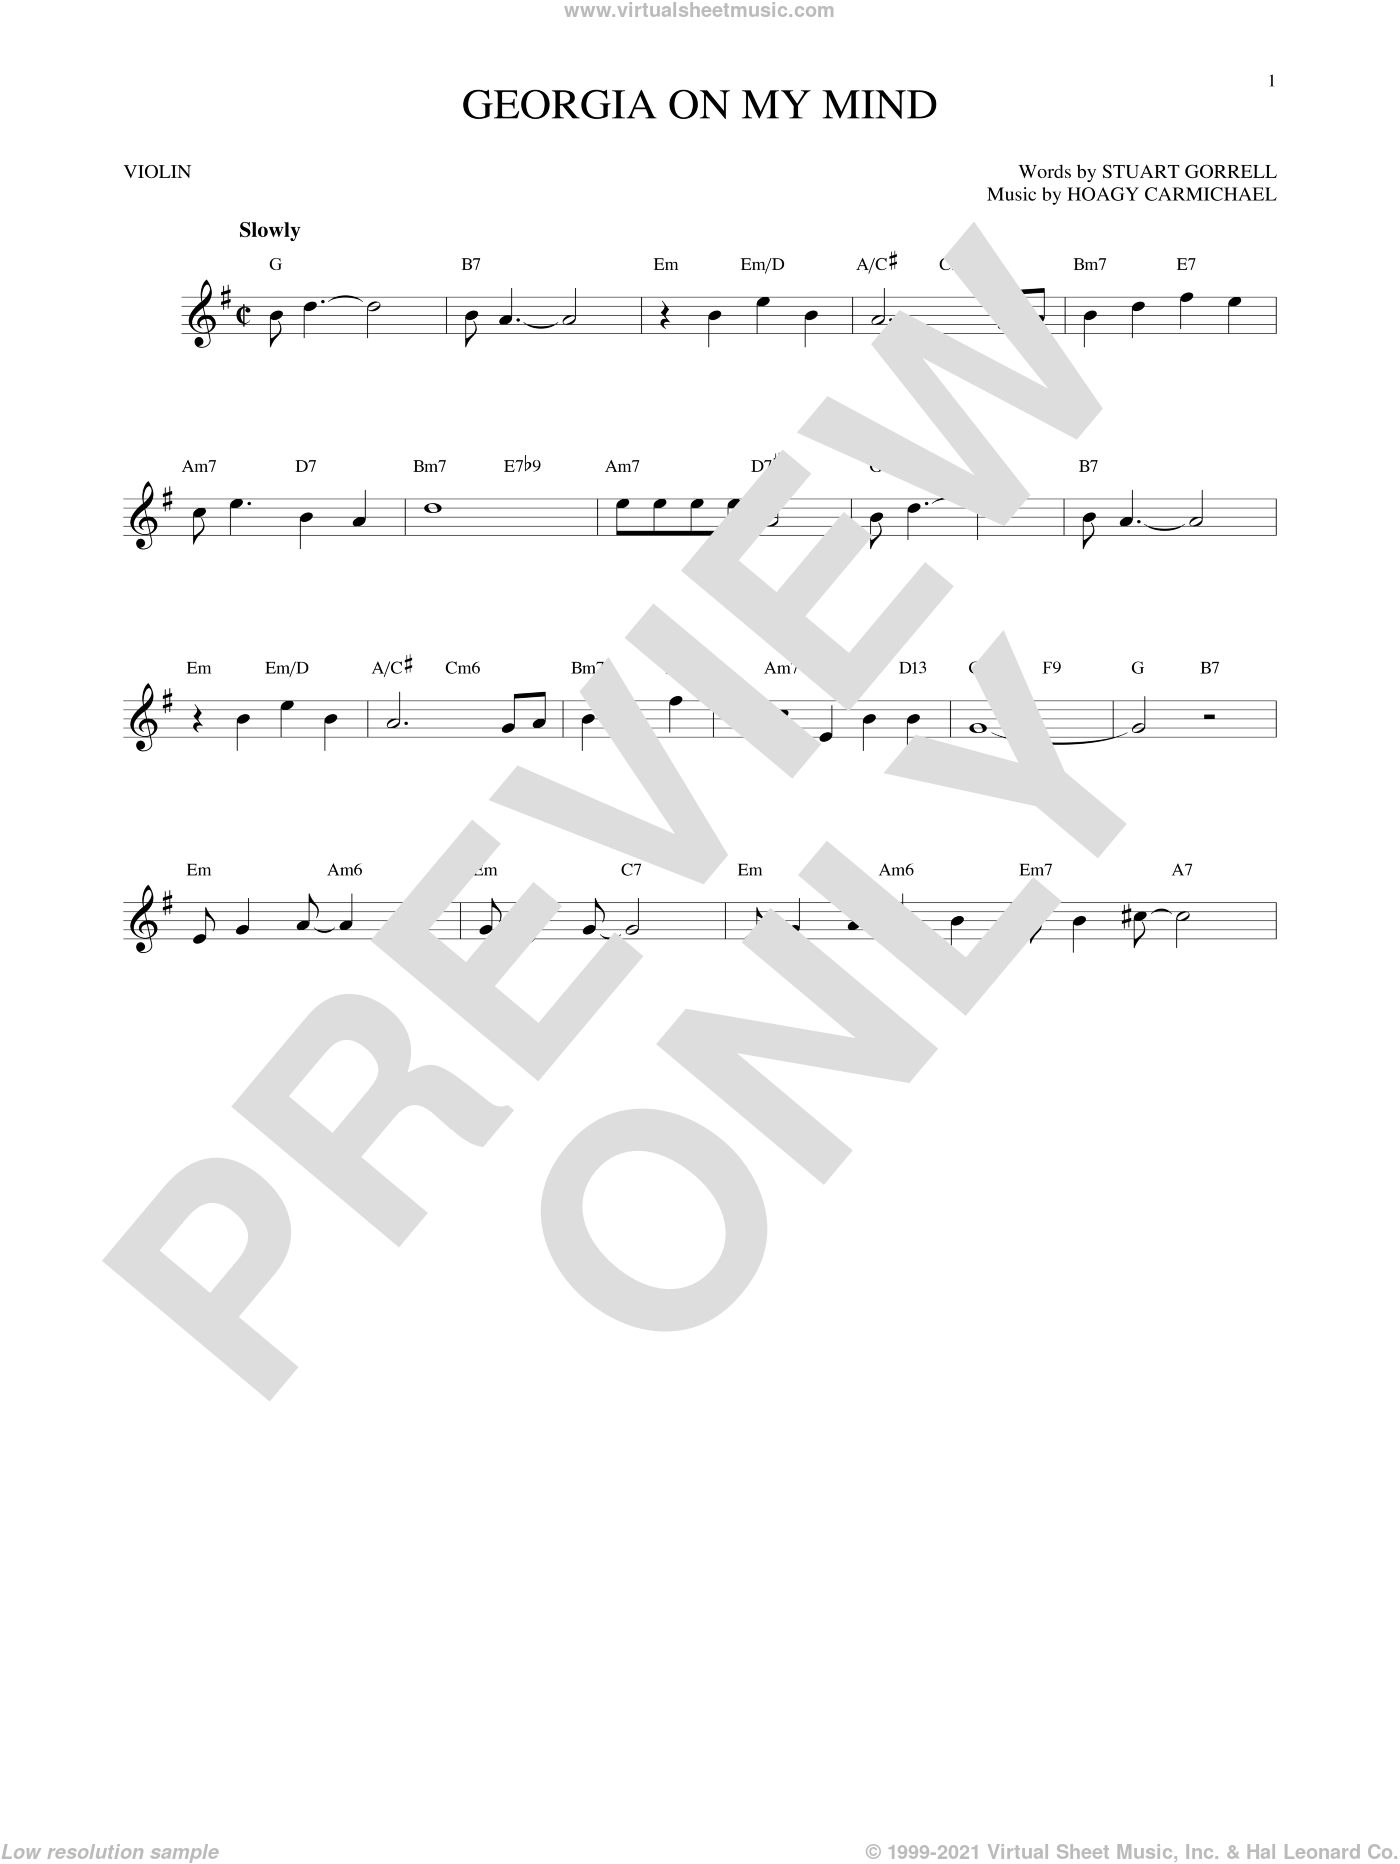 Georgia On My Mind sheet music for violin solo by Hoagy Carmichael, Ray Charles, Willie Nelson and Stuart Gorrell, intermediate. Score Image Preview.